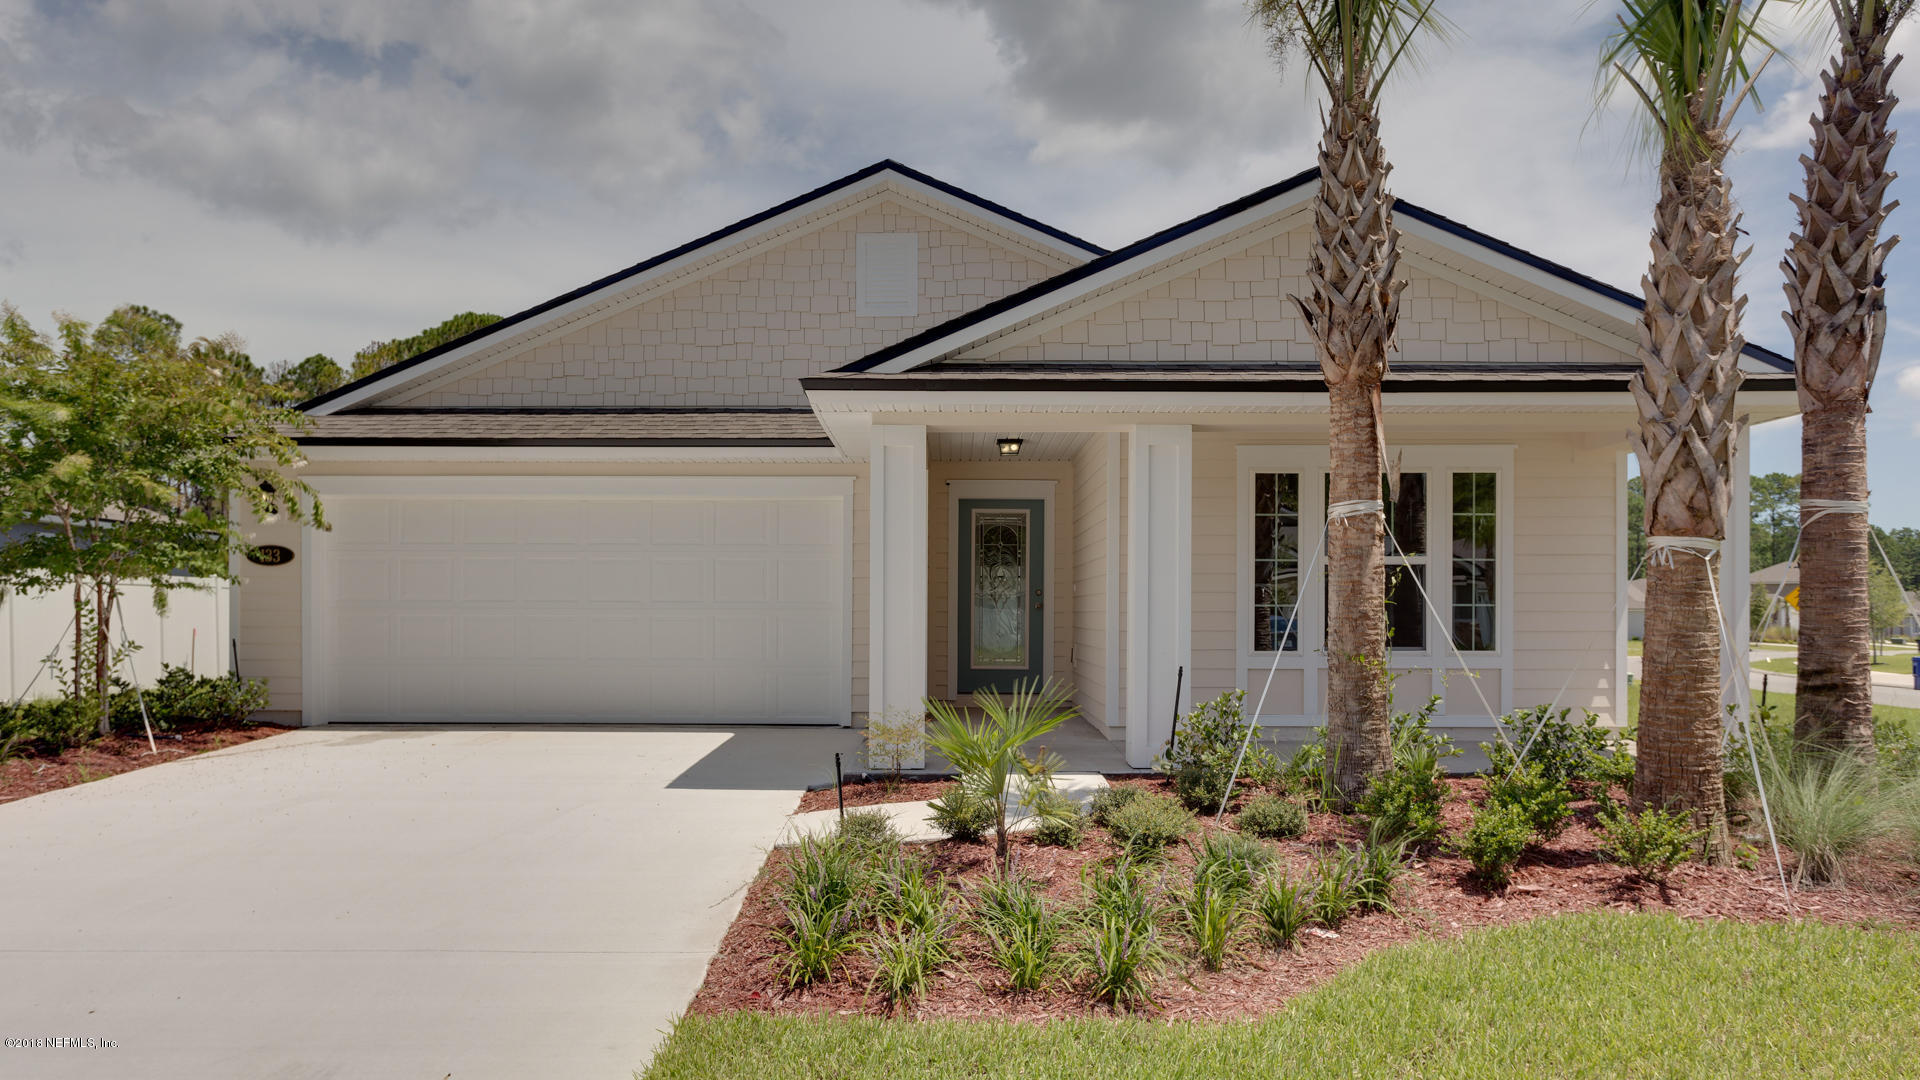 133 PULLMAN, ST AUGUSTINE, FLORIDA 32084, 3 Bedrooms Bedrooms, ,2 BathroomsBathrooms,Residential - single family,For sale,PULLMAN,922991